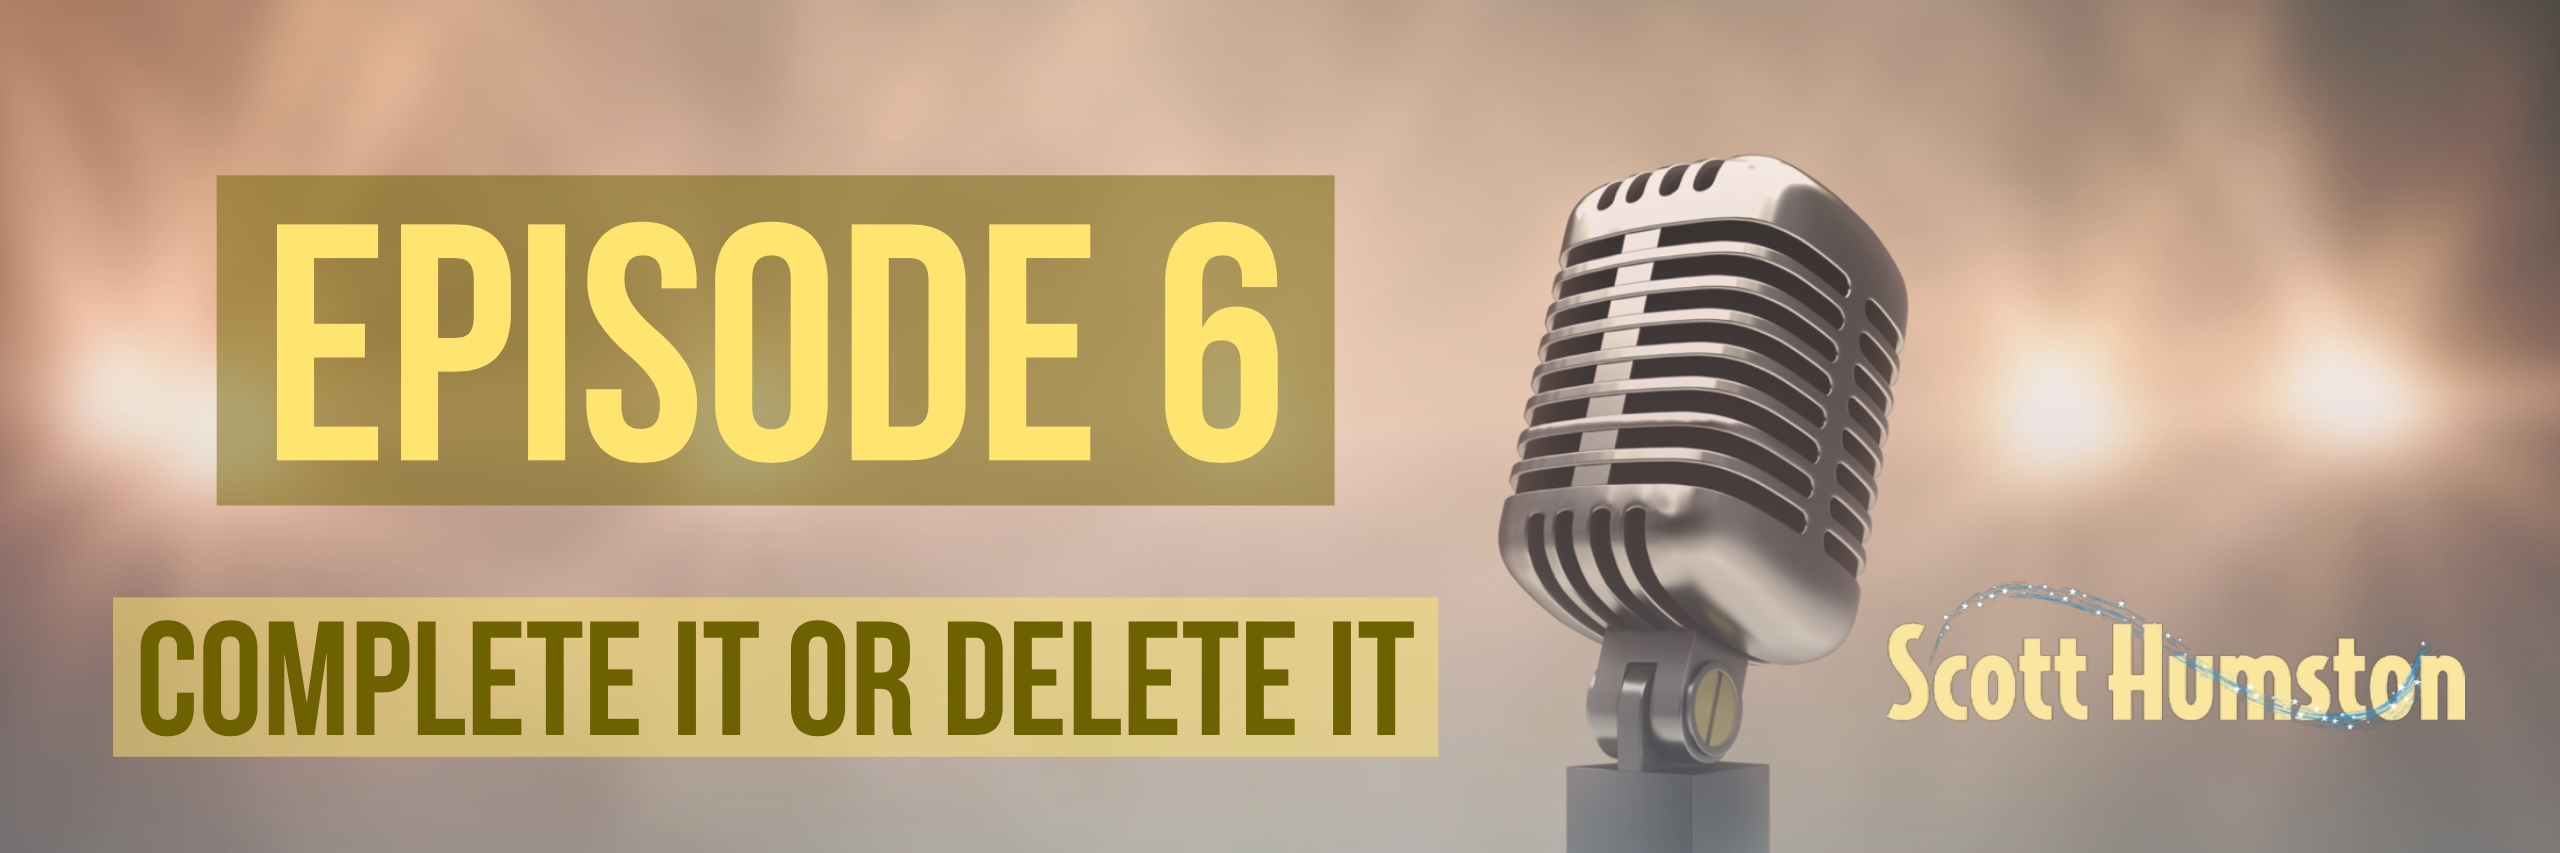 Scott Humston-2 Minute Tips Episode 6 Complete It or Delete